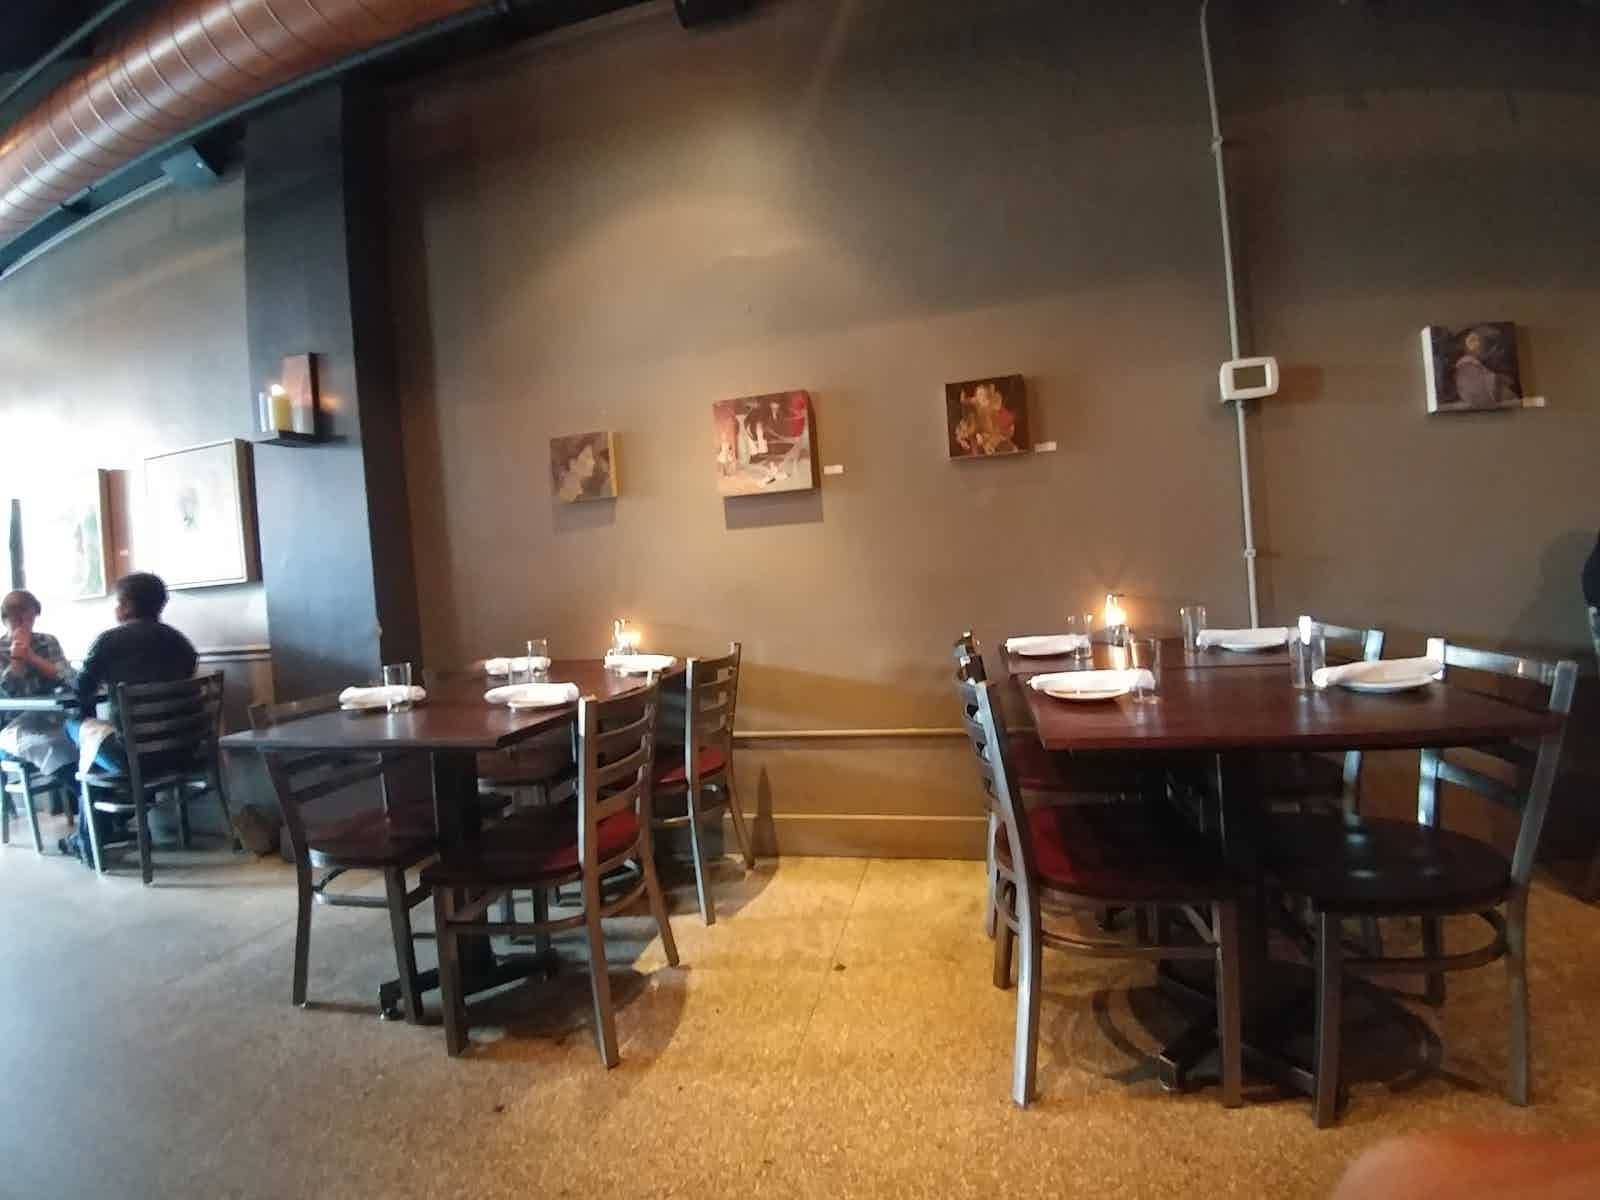 District Kitchen Bar Pittsfield Restaurant Review Zagat